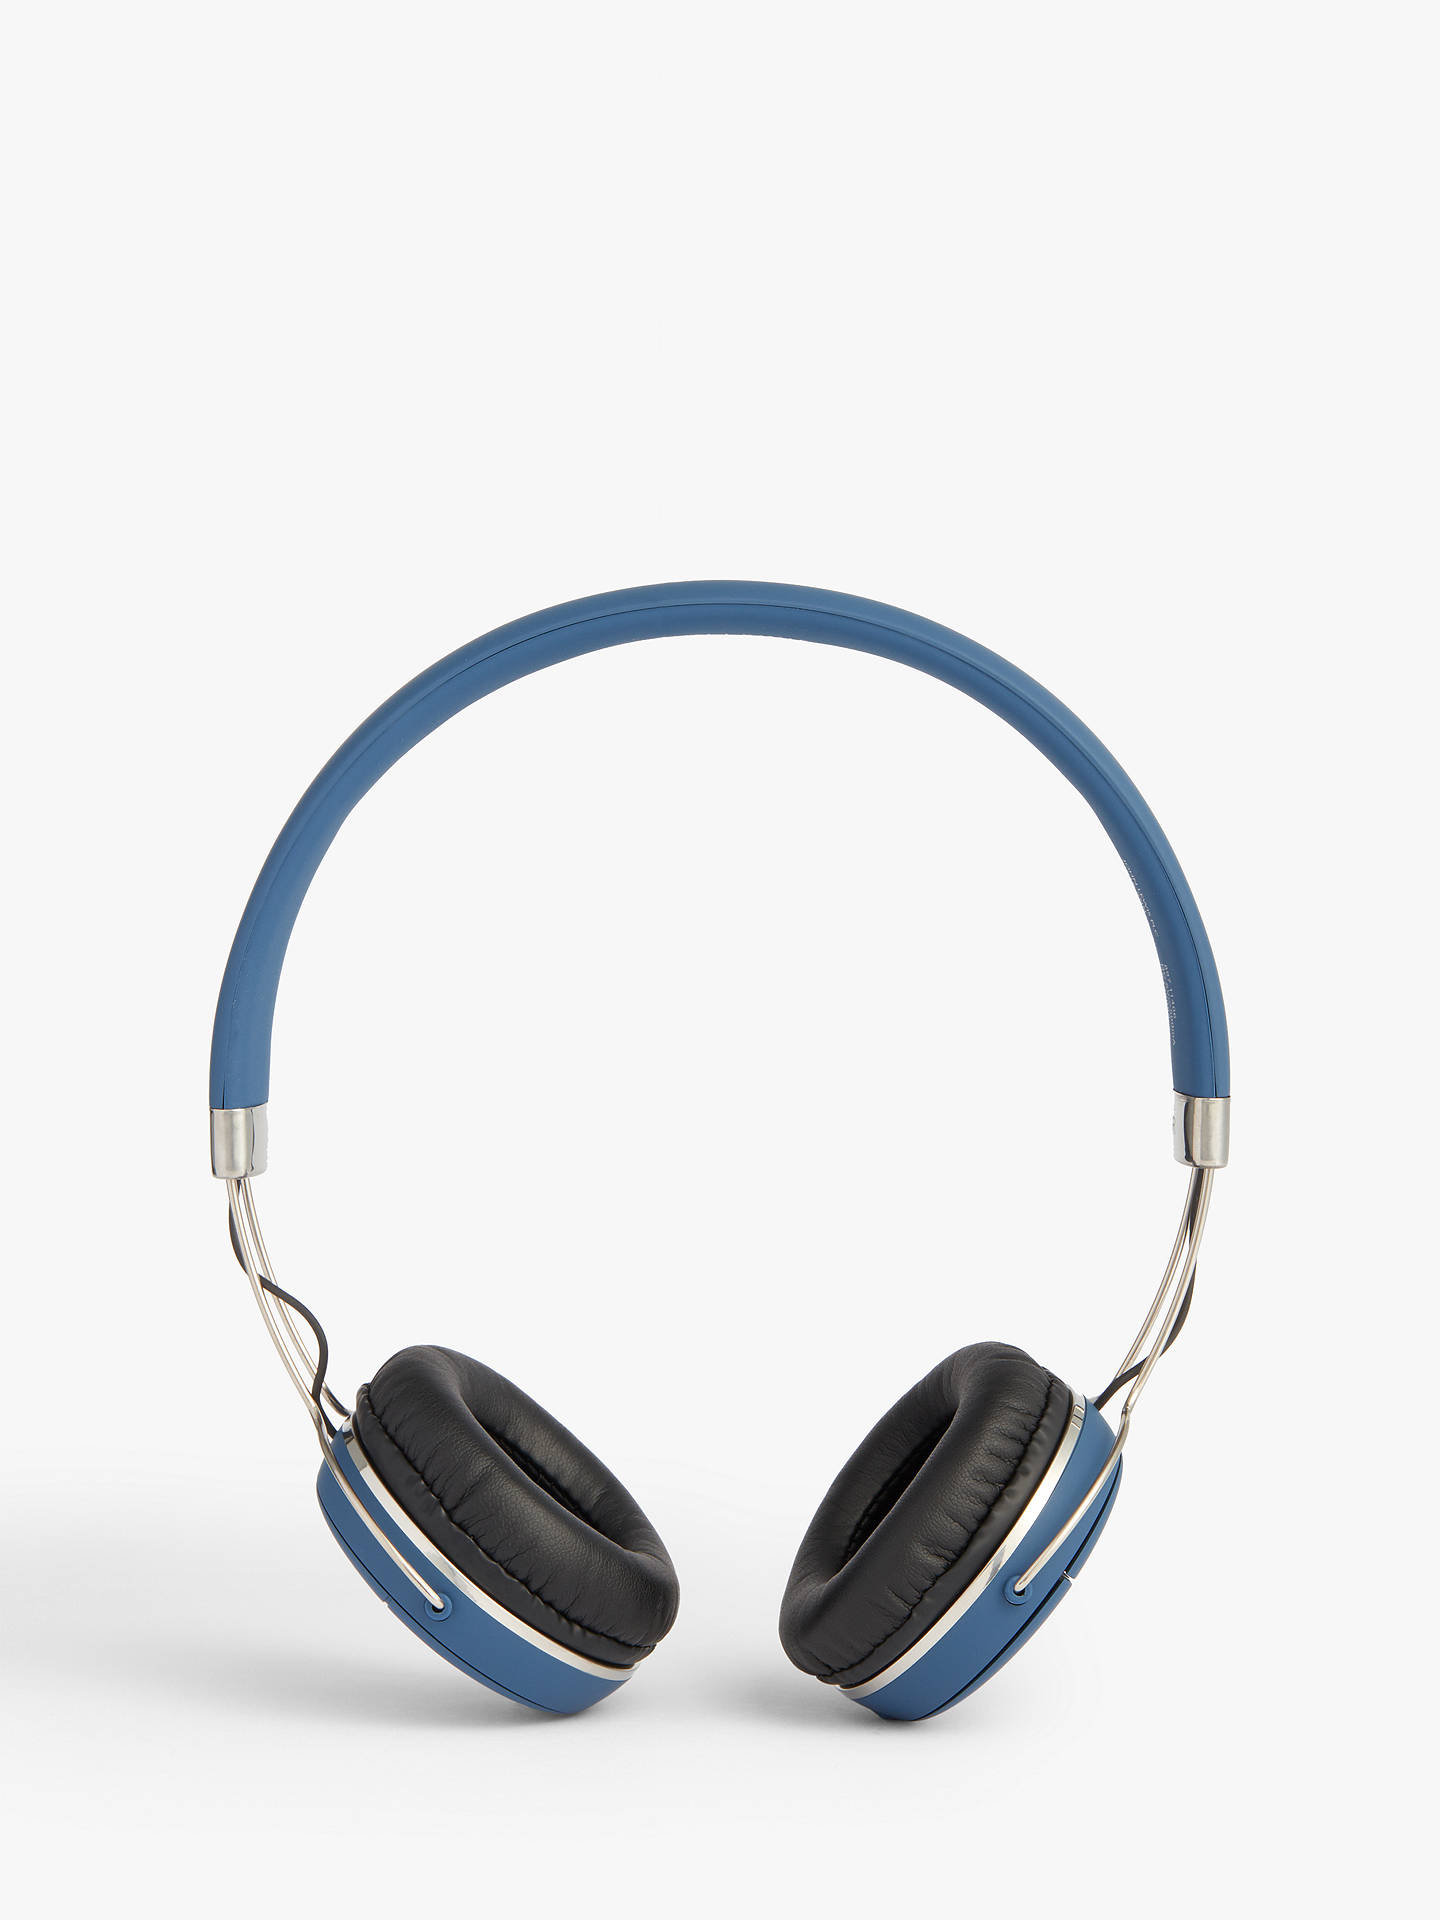 Buy John Lewis & Partners H2 Wireless On-Ear Headphones with Mic/Remote, Blue Online at johnlewis.com